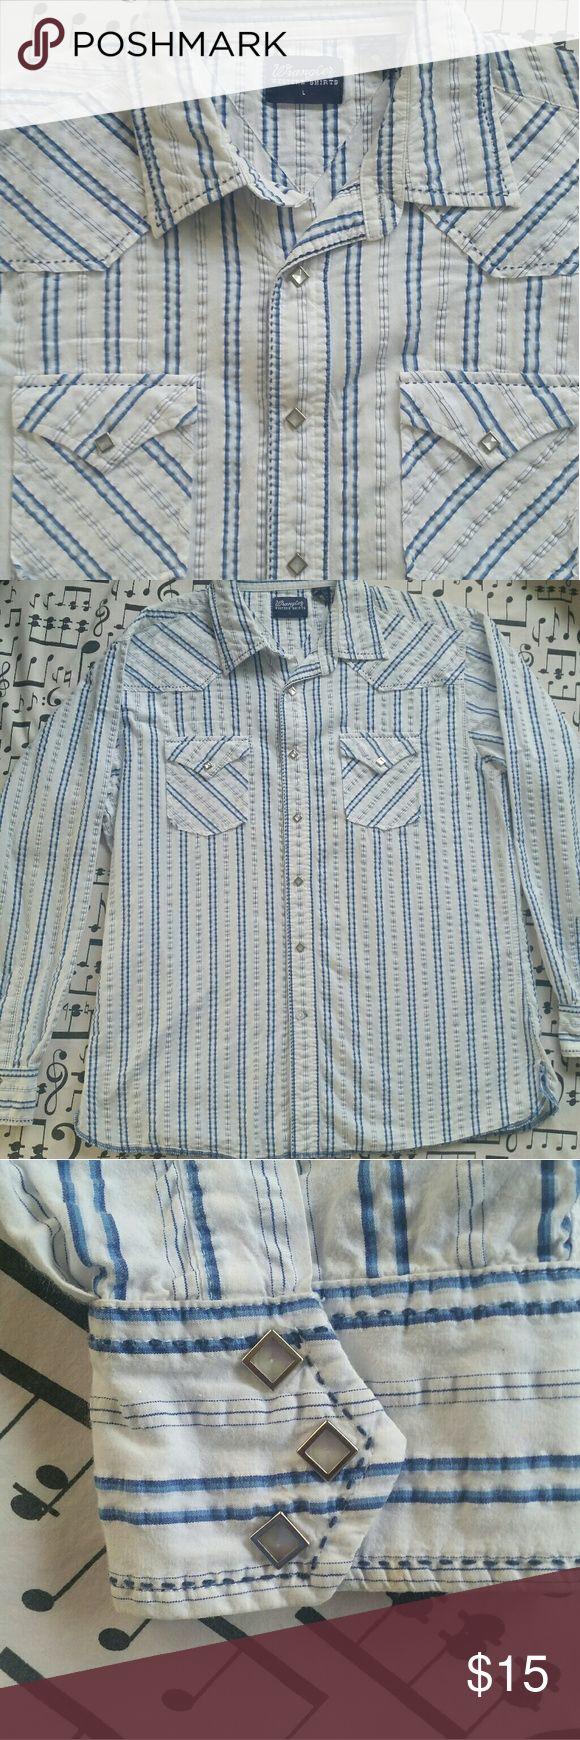 WRANGLER Men's Shirt Don't let the western tag fool you...def can be a rocker shirt This shirt + faded jeans = HOT Lightweight material perfect for Summer Cool button detail Excellent Condition  Size L Wrangler Shirts Casual Button Down Shirts